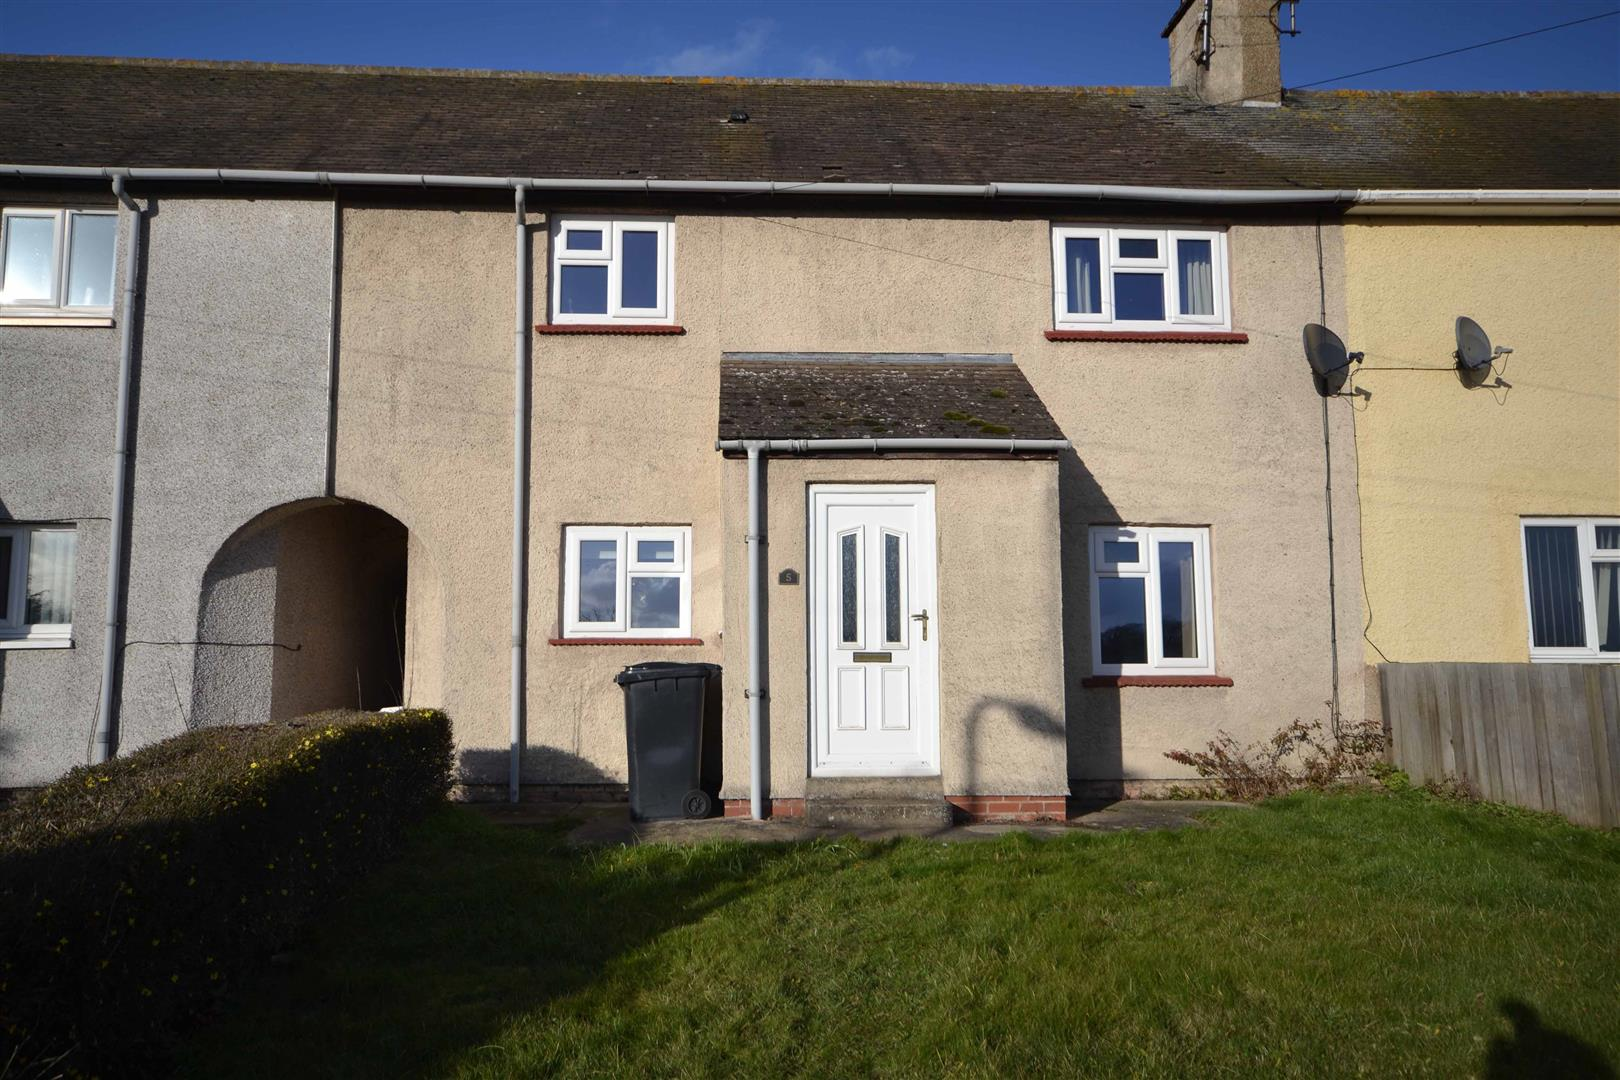 3 Bedroom House - Mid Terrace -